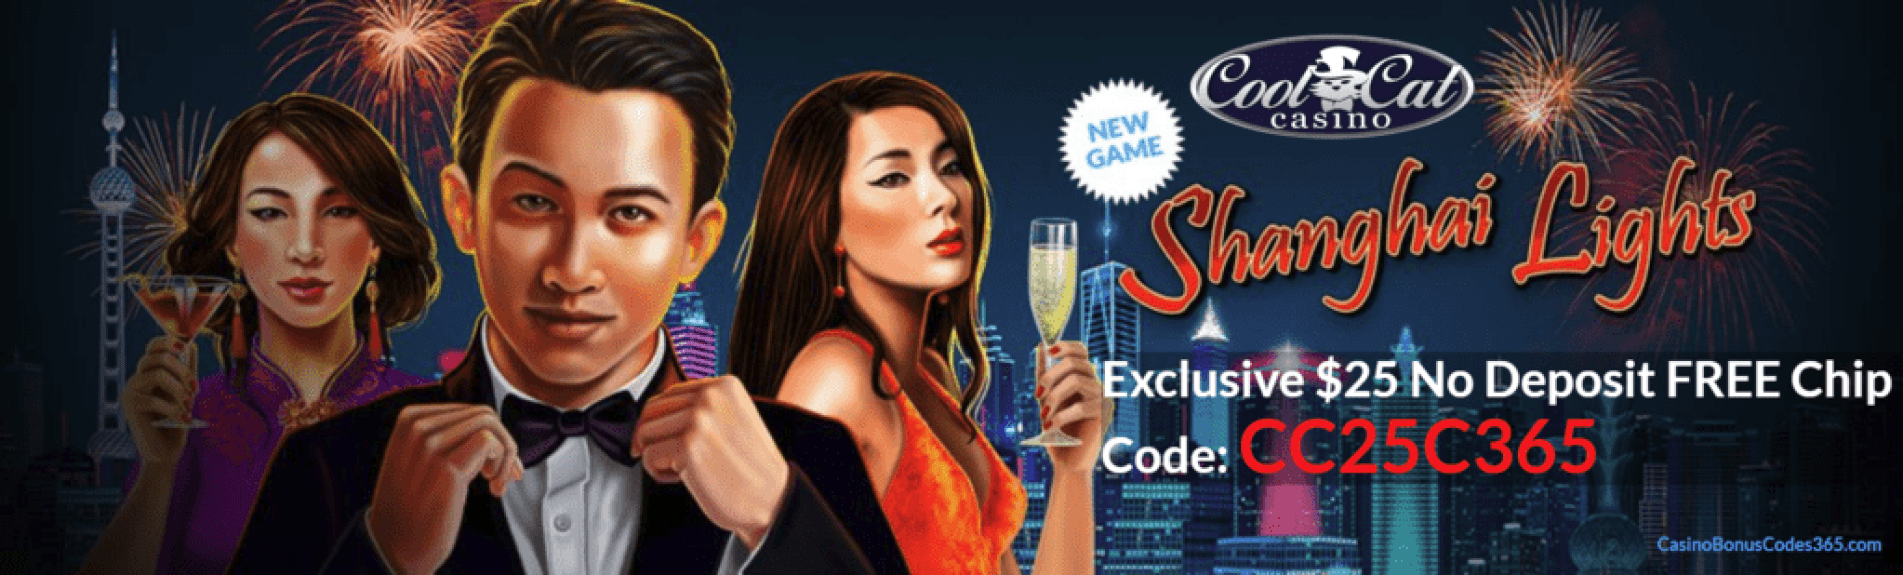 CoolCat Casino RTG Shanghai Lights Exclusive No Deposit FREE Chip